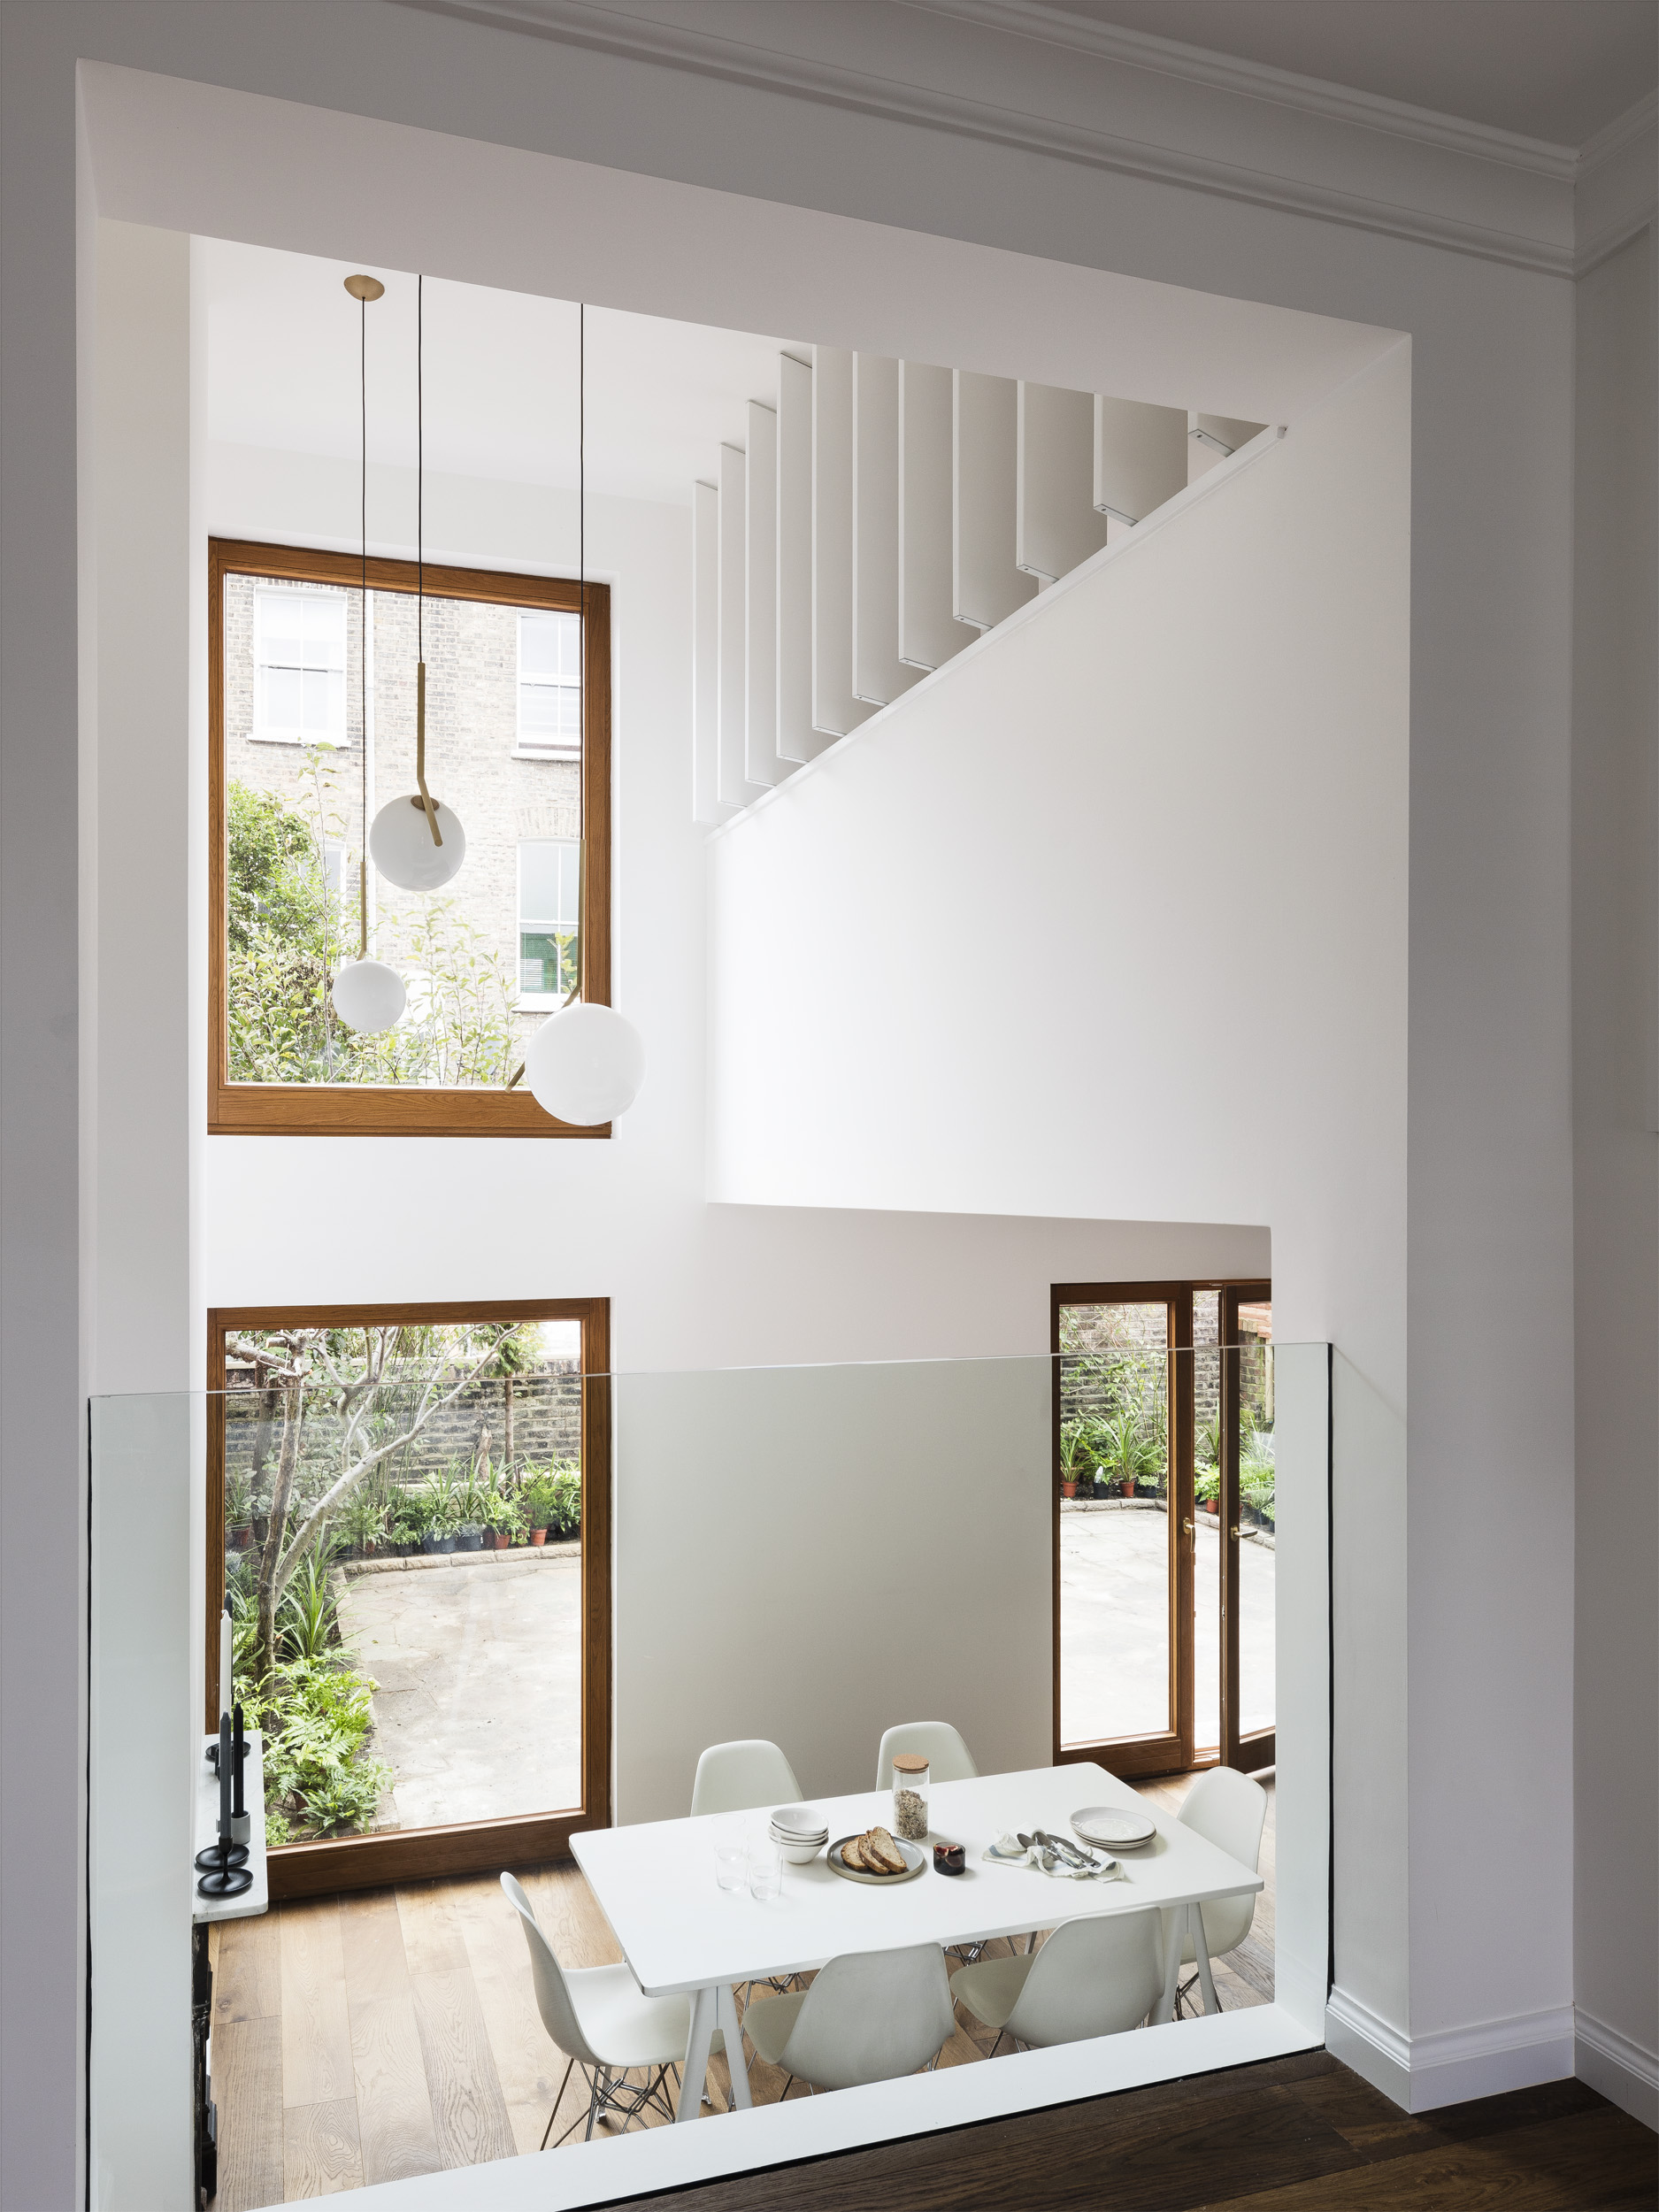 </p> <p>Find your ideal home design pro on designfor-me.com - get matched and see who's interested in your home project. Click image to see more inspiration from our design pros</p> <p>Design by Amos, architect from Islington, London</p> <p>#architecture #homedesign #modernhomes #homeinspiration #minimalistarchitecture #minimalistdecor #minimalistdesign #miminalism #glazing #architecturalglazing #naturallight #doubleheightspace</p> <p>